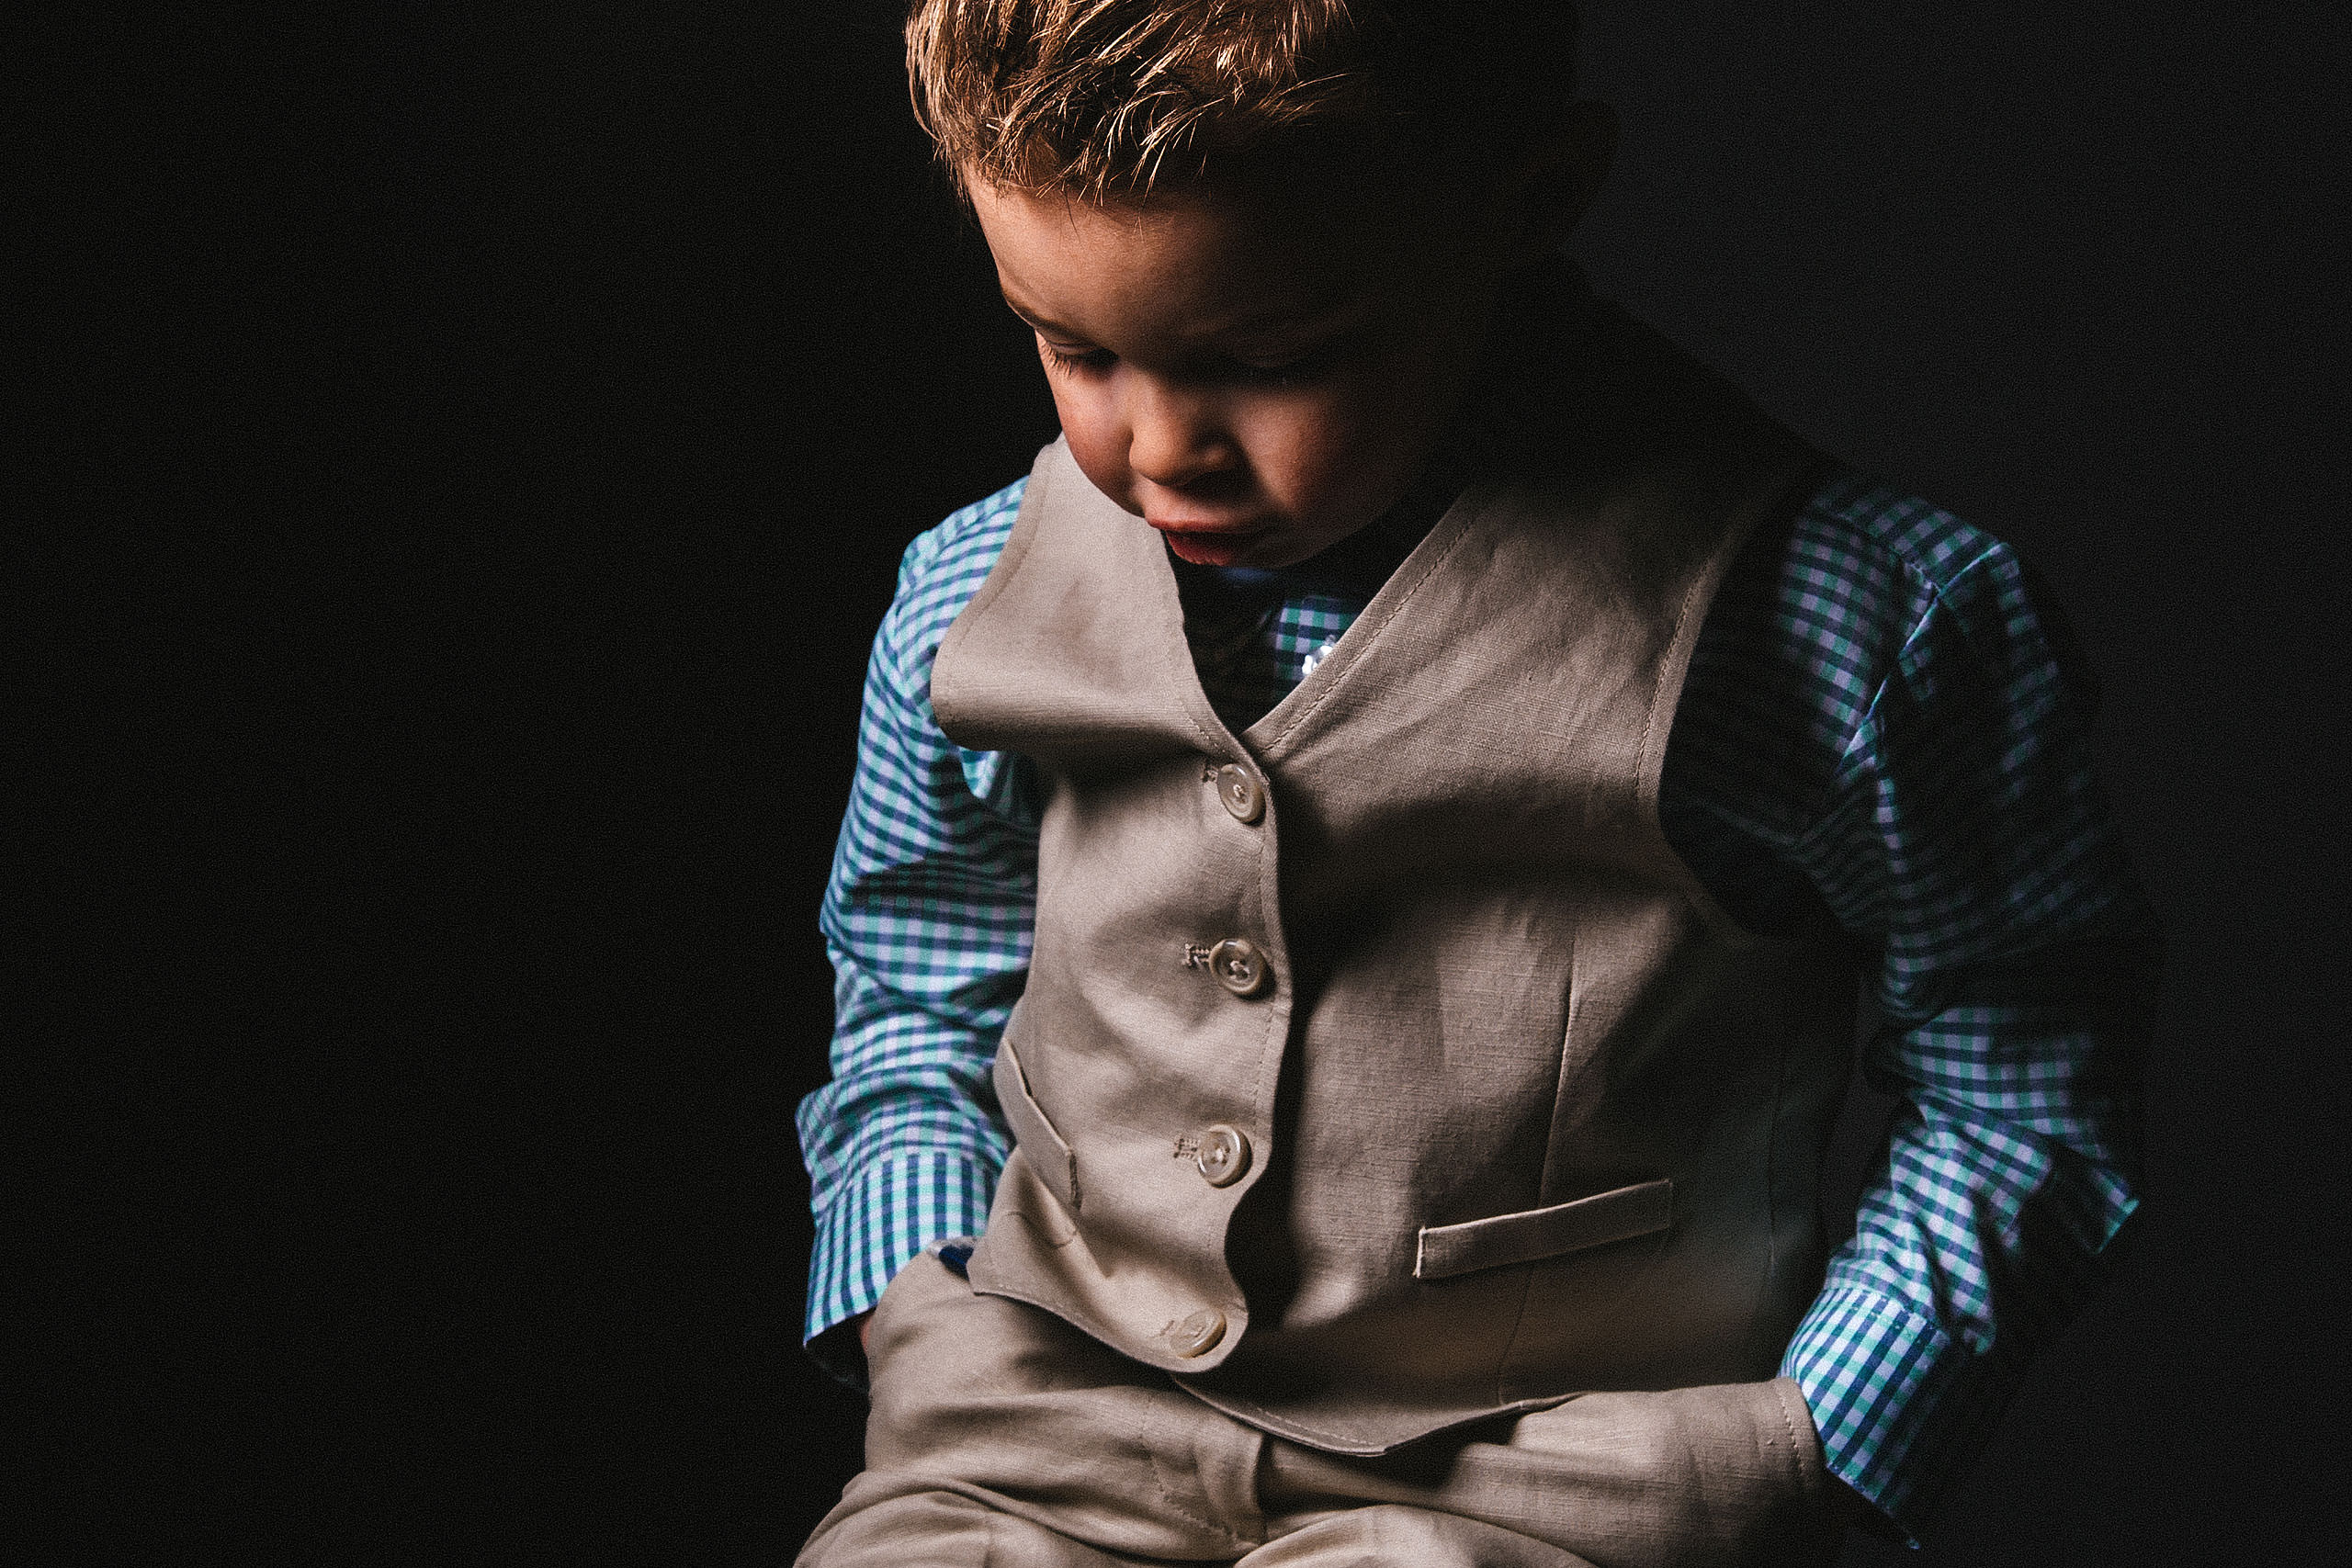 a young boy with his hands in his pockets looking down by top family portrait photographer sean leblanc